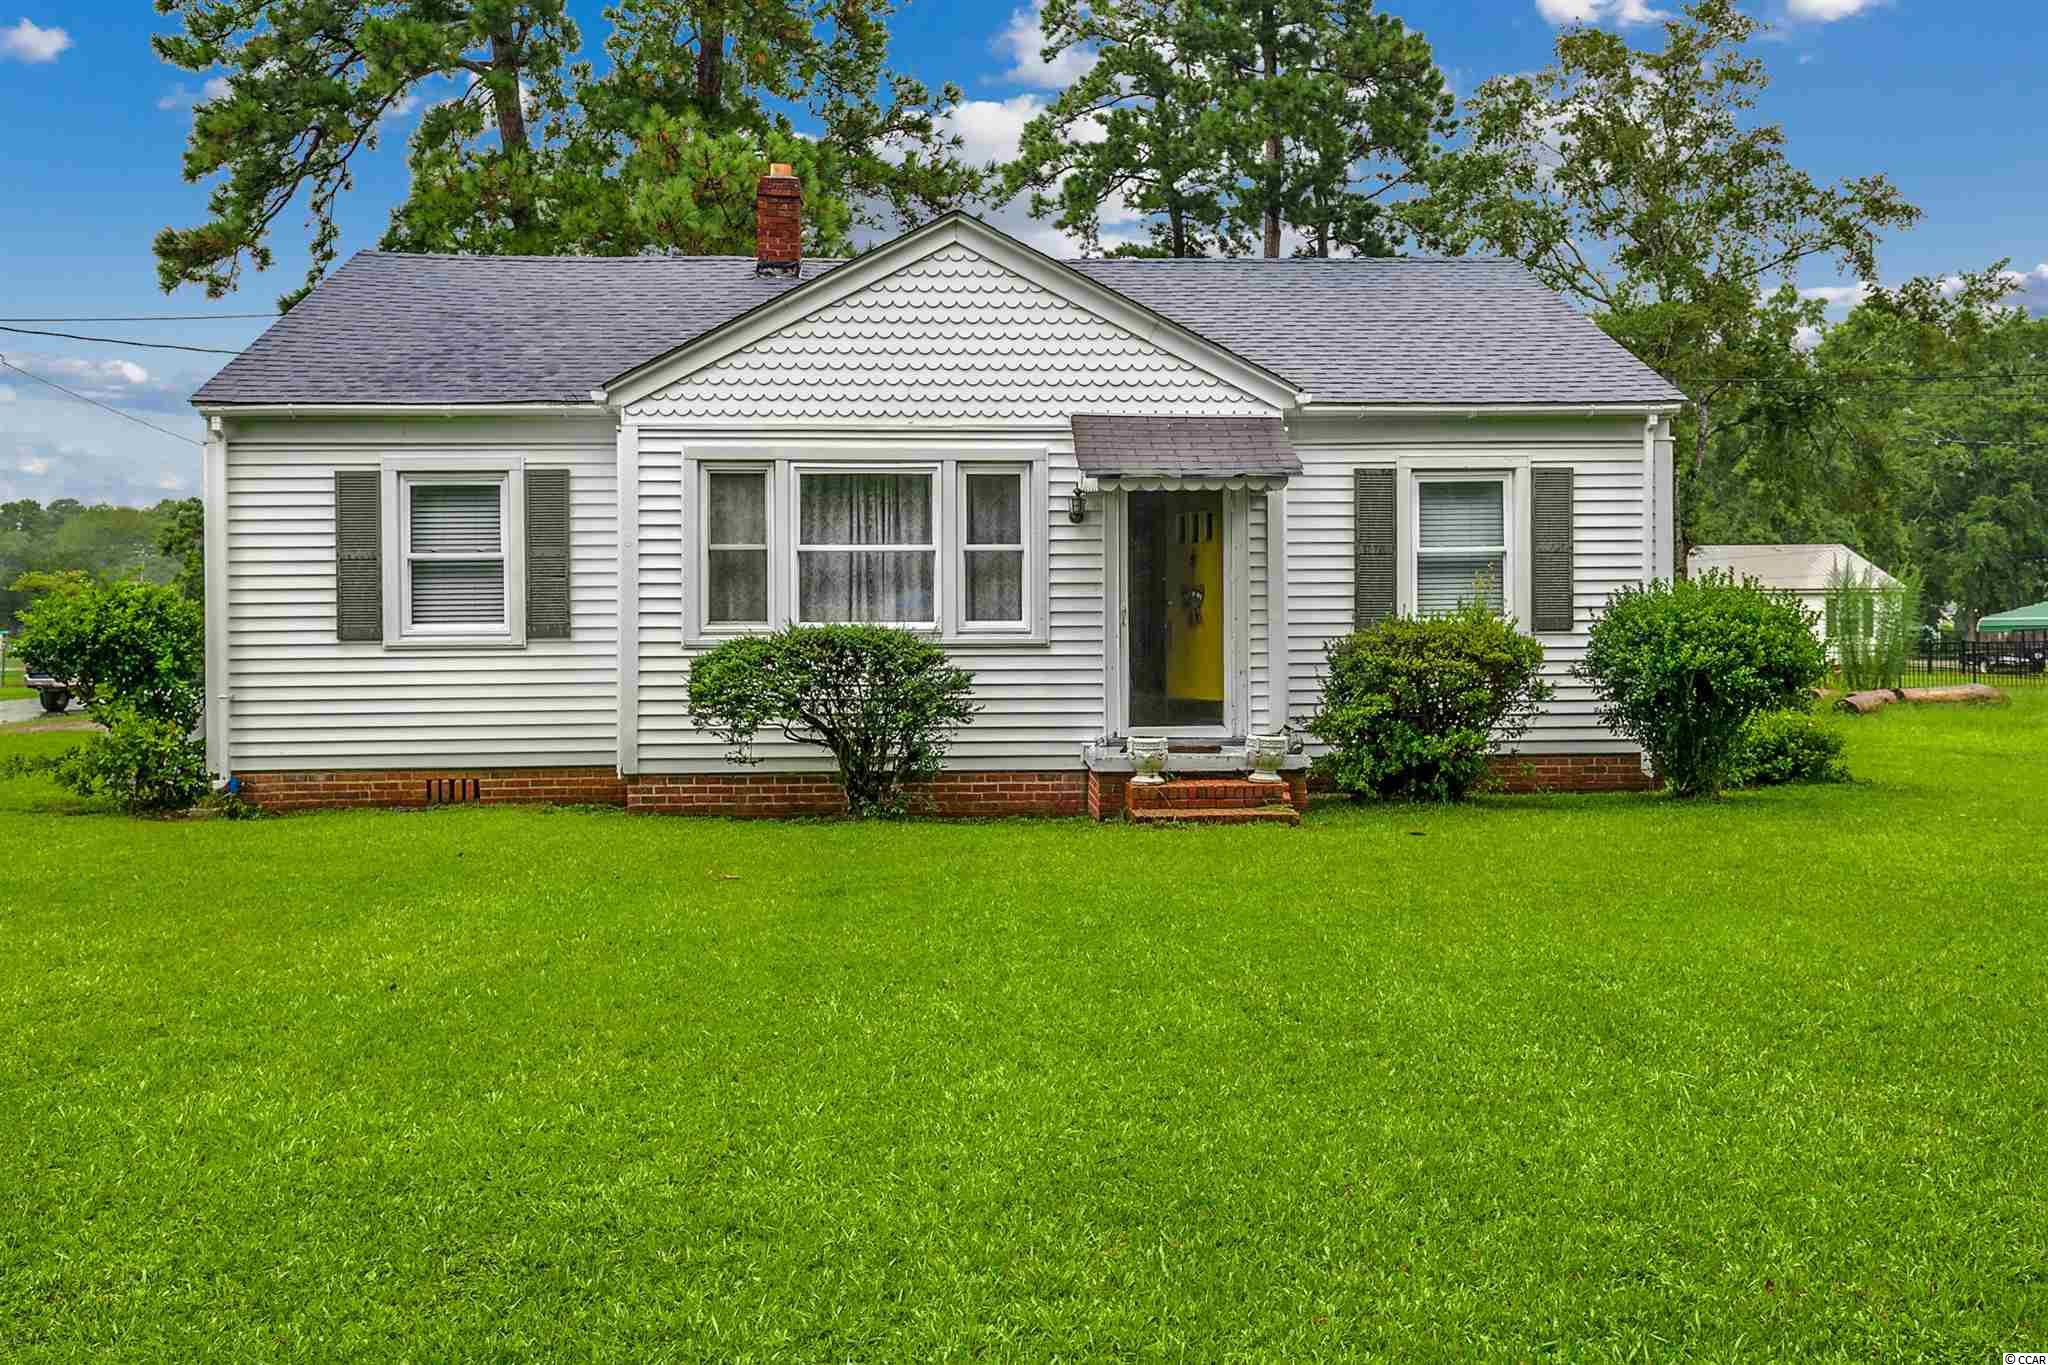 Cute cottage on corner lot! This mid-century cottage has original refinished woods floors to give it that perfect cozy feeling. Nice size front and back yard, 3 bedrooms, 1 1/2 bath, comes with carport and 2 sheds. Close to historic downtown Georgetown and only 20 minutes to Pawleys Island.